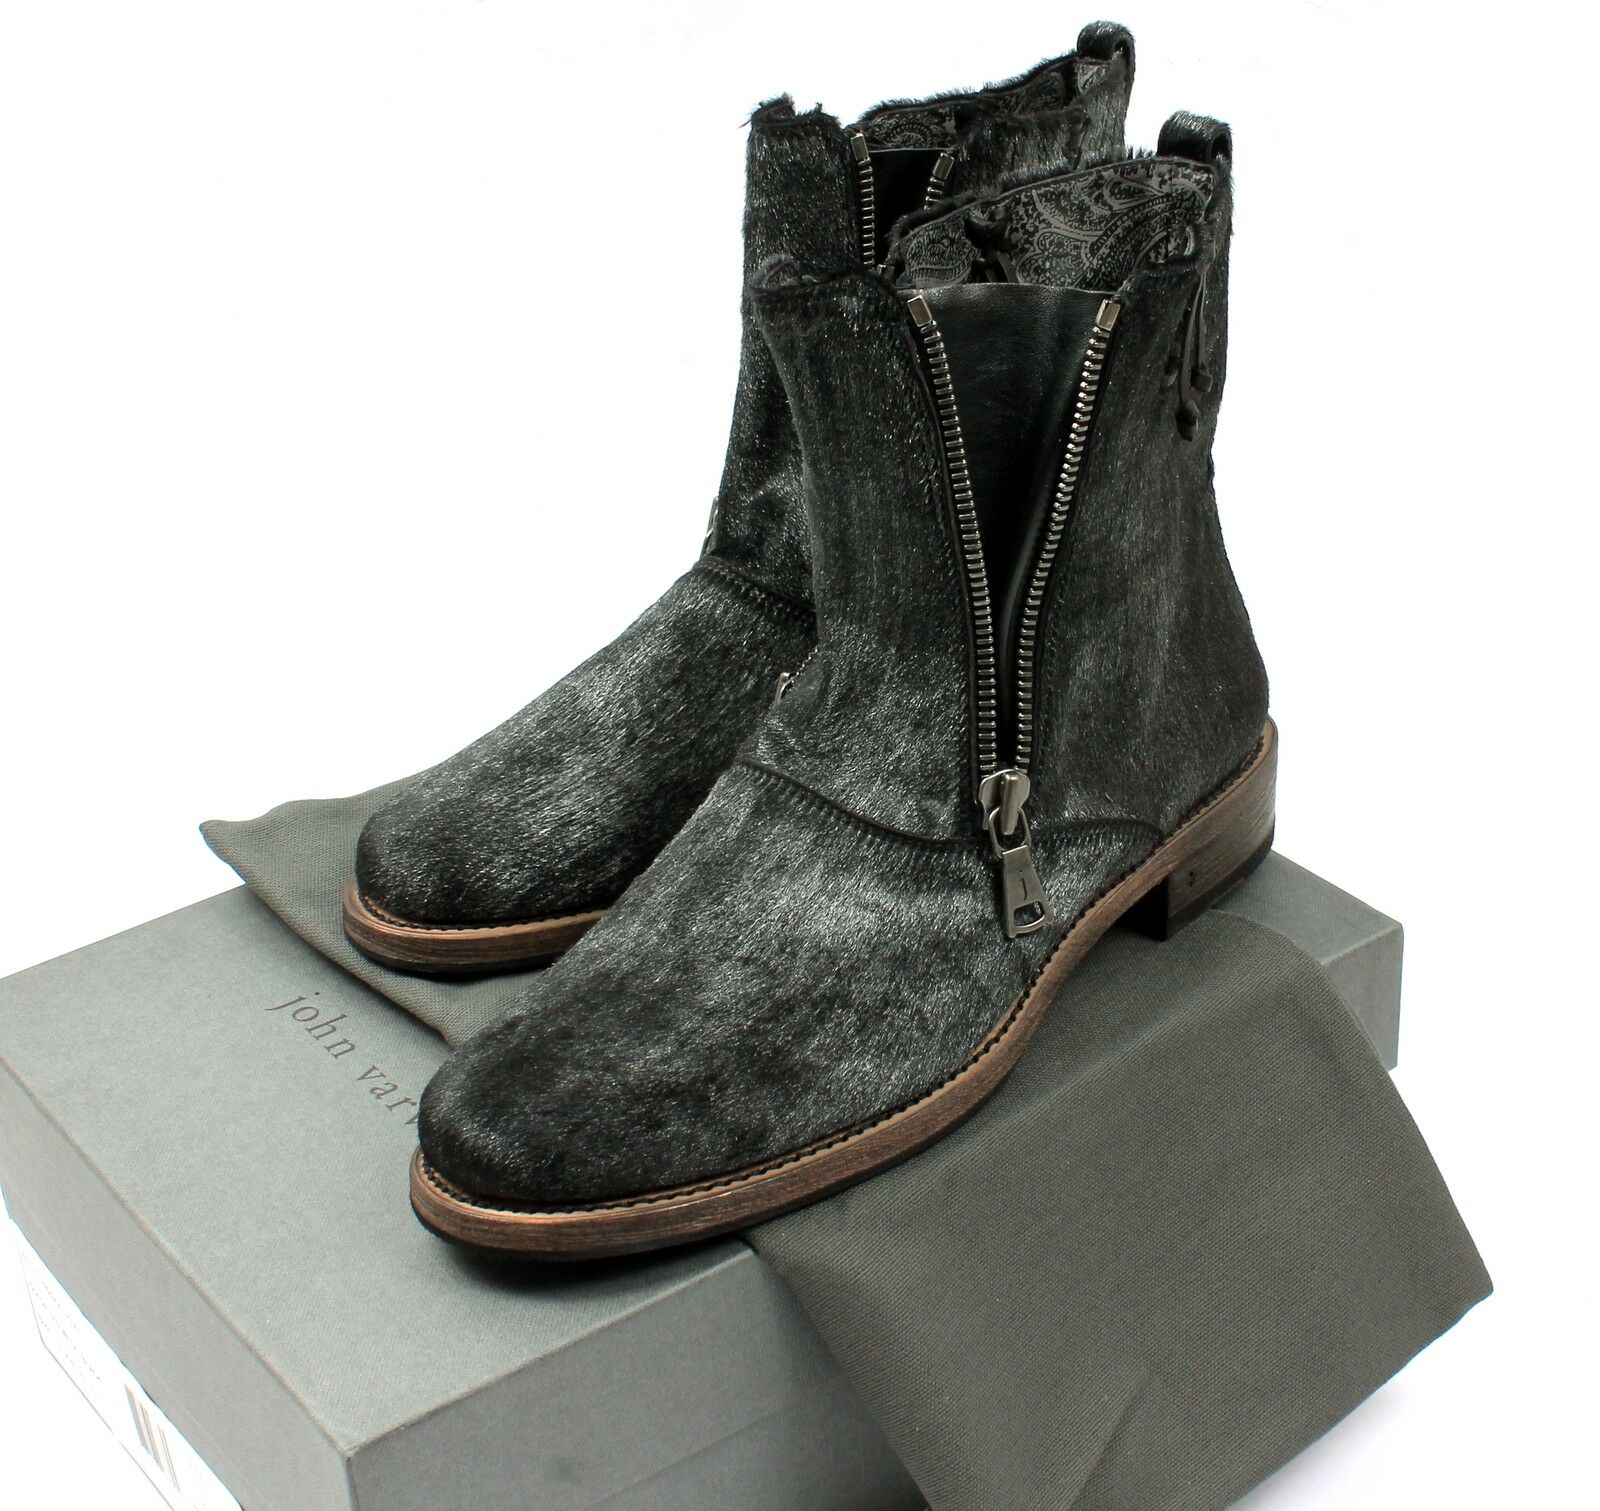 JOHN VARVATOS HANDMADE Double Zip PONY HAIR Leather Stiefel schuhe UK8 EU42 US9 NEW    | Komfort